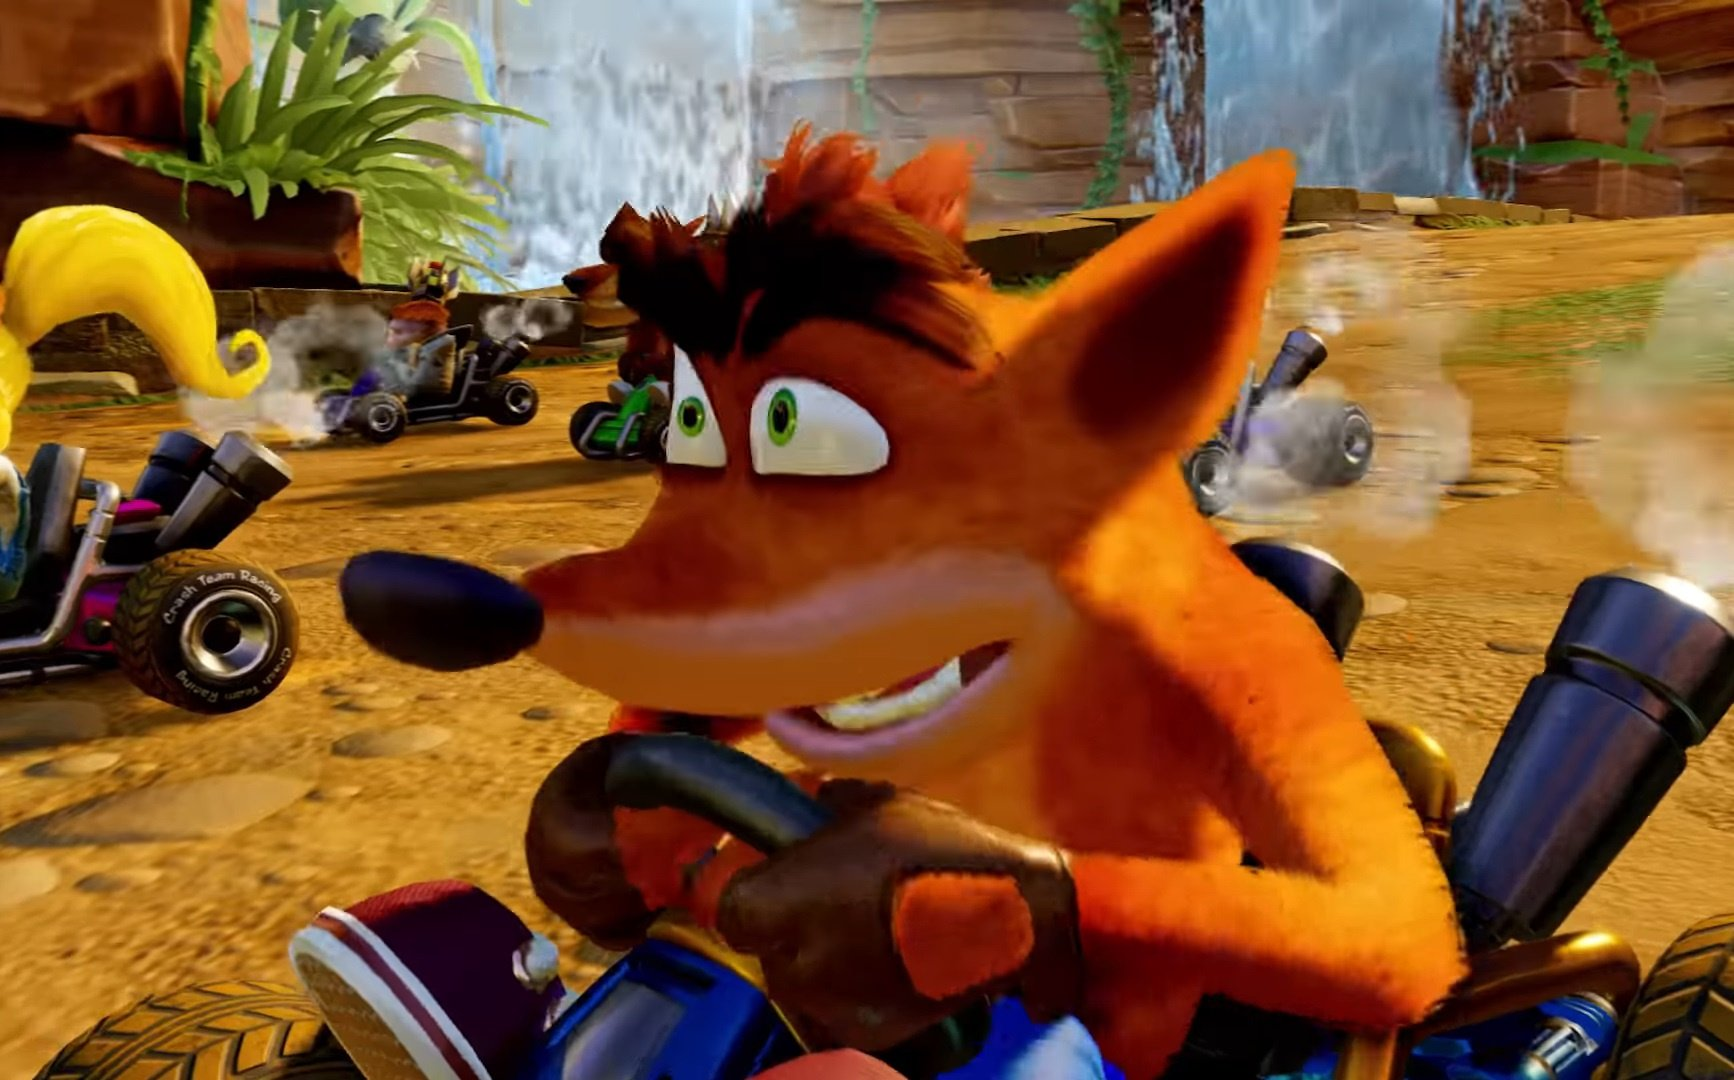 Video: View The Nitro-Fueled Gameplay In This Crash Team Racing Clip